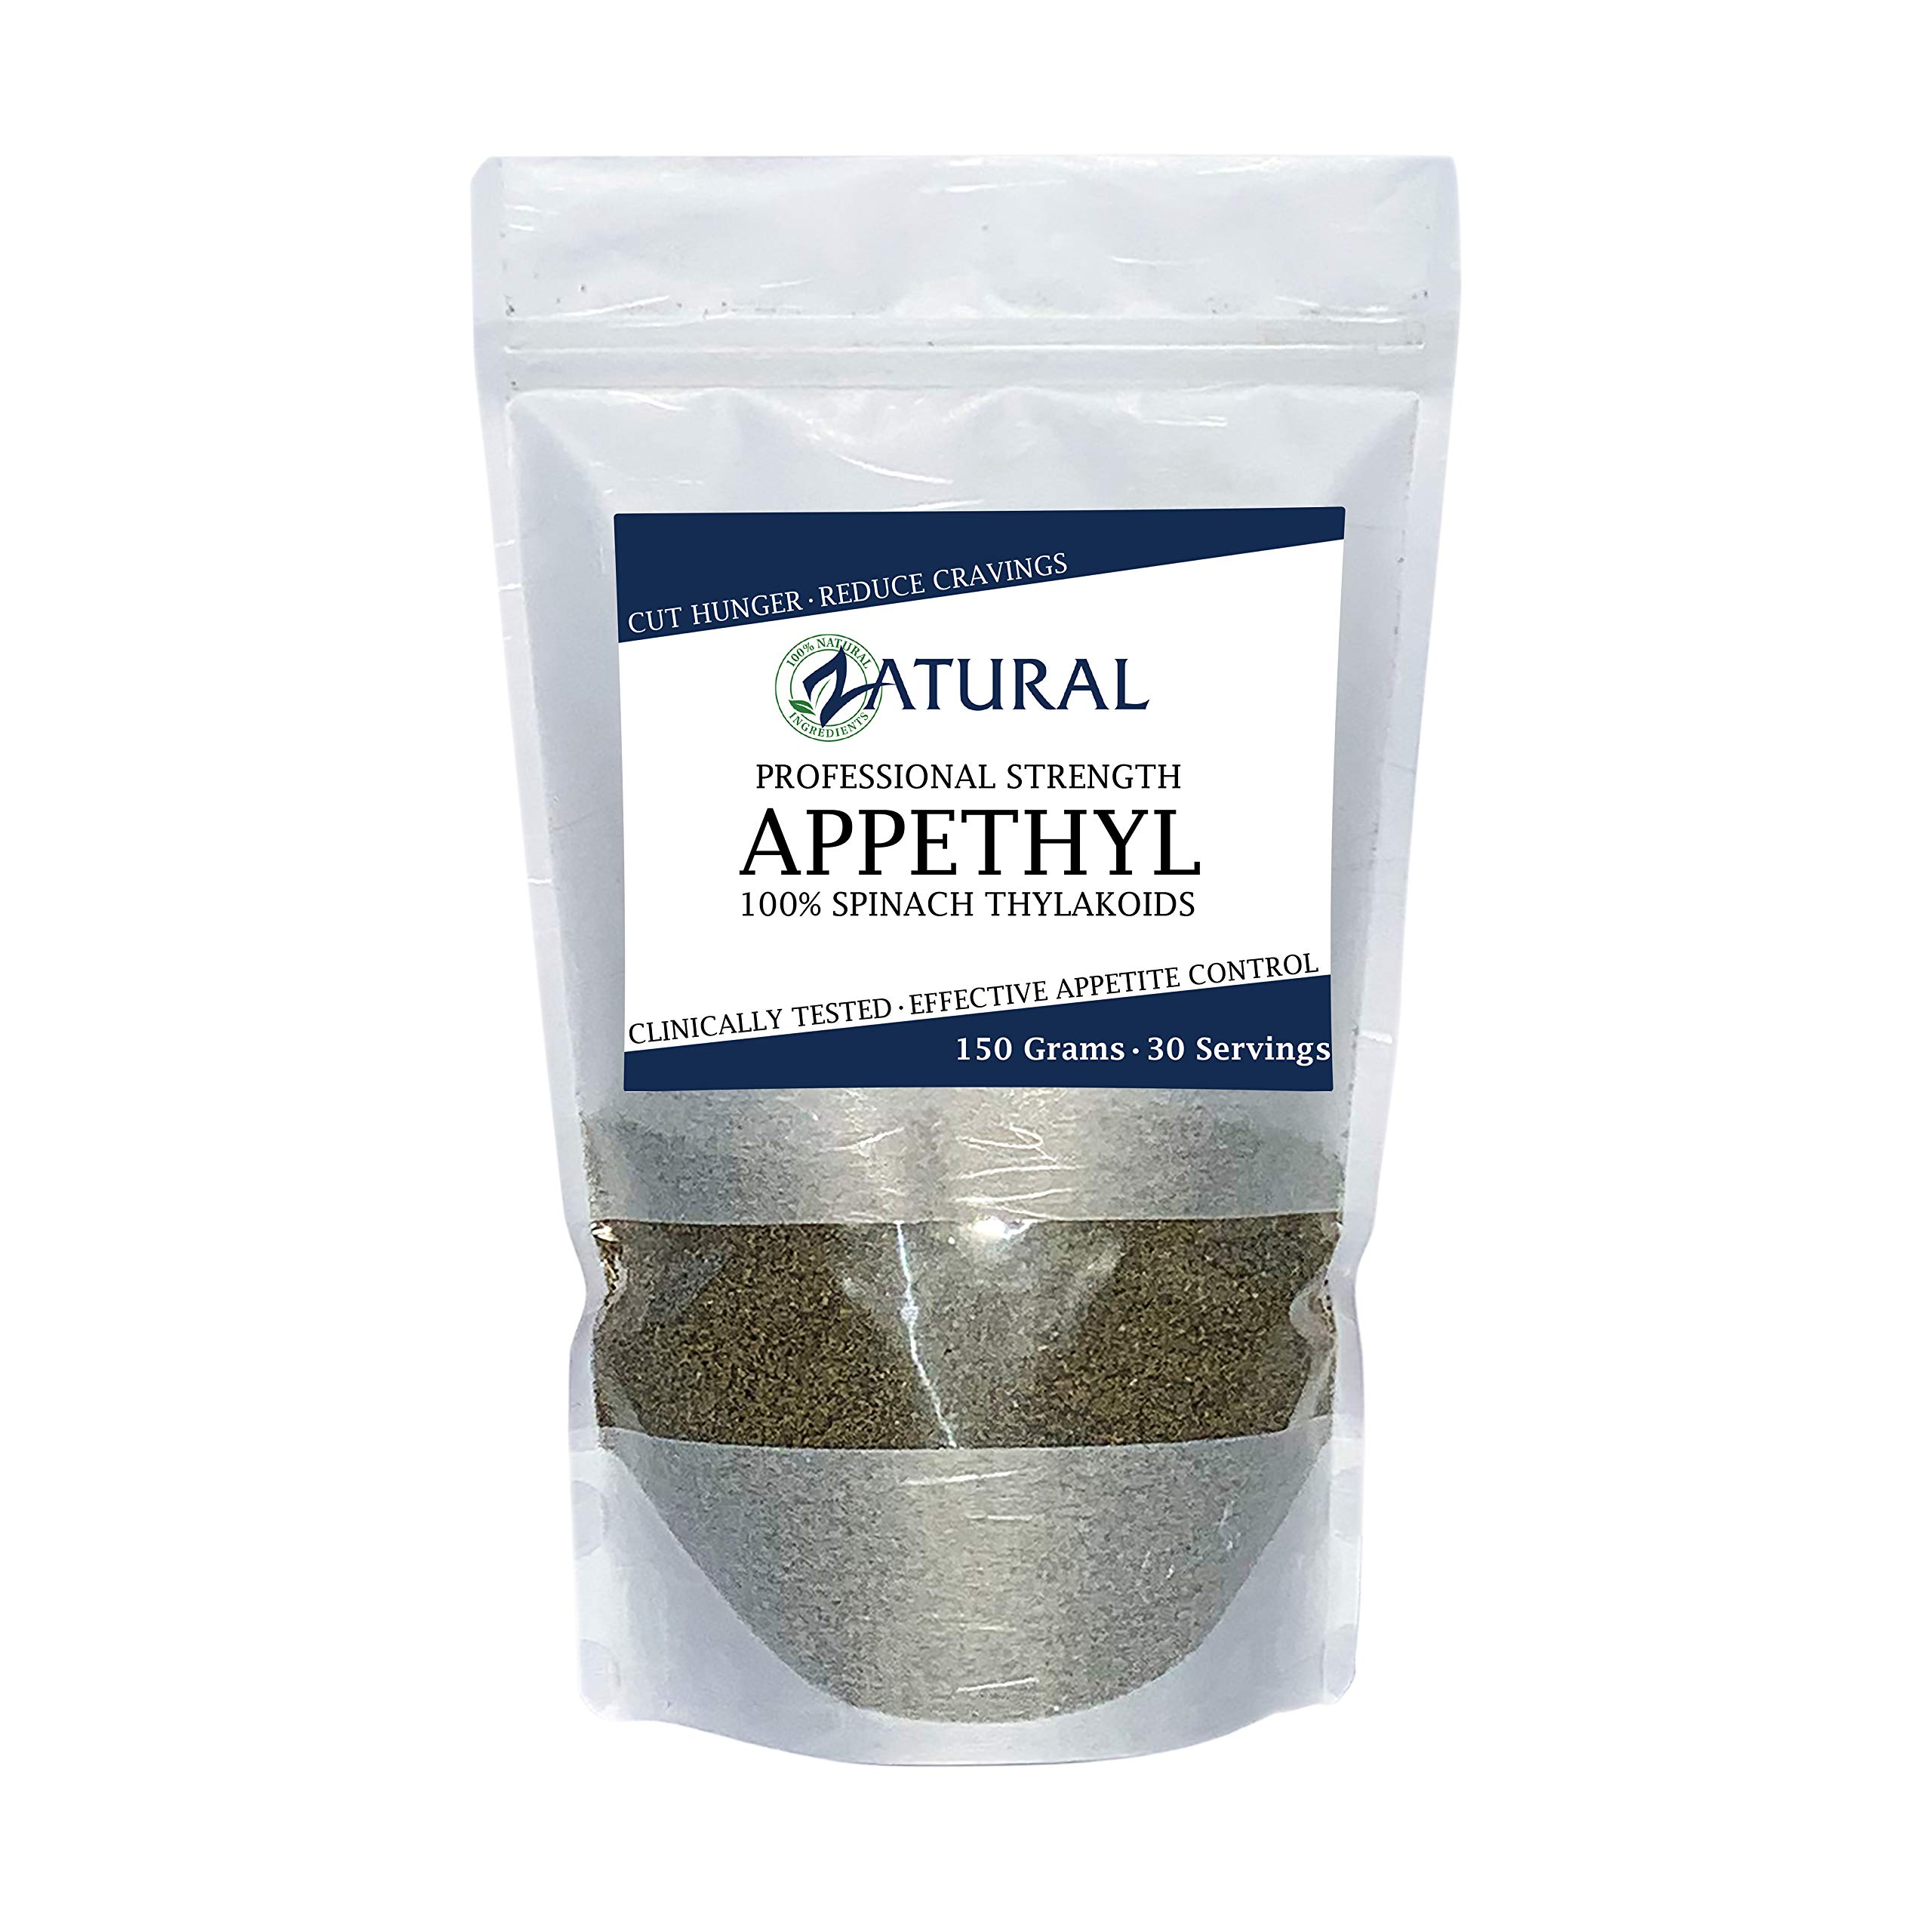 Appethyl, Pure Professional Strength - 30 Servings